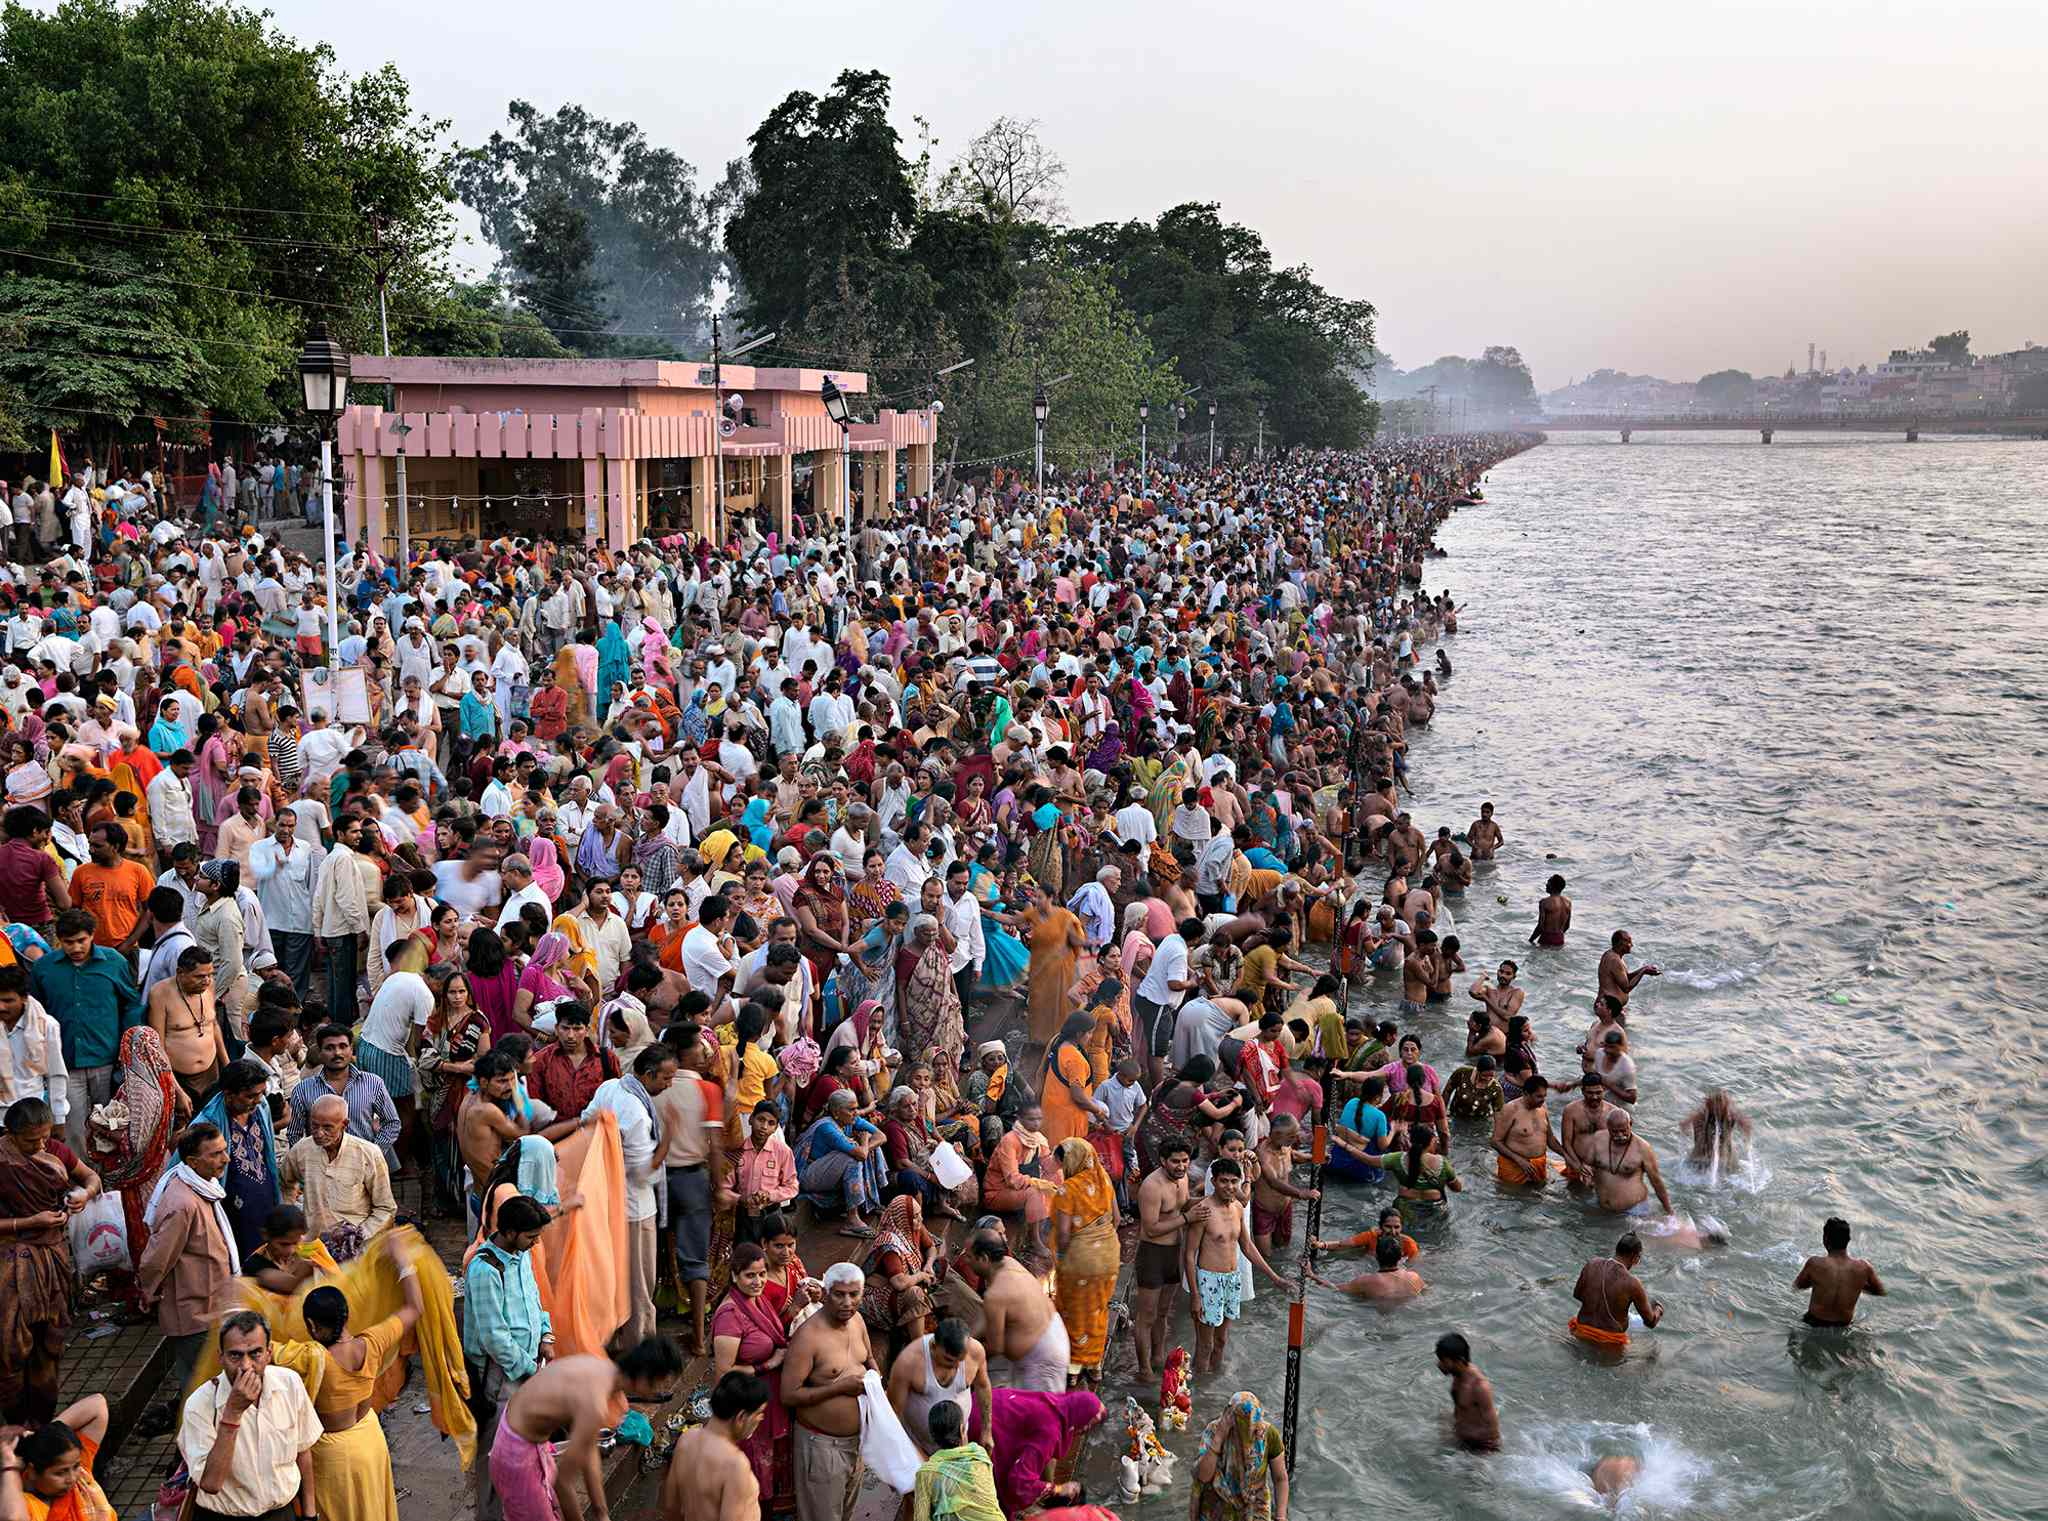 Devout Hindus gather to bathe where the Ganges and Yamuna rivers meet.